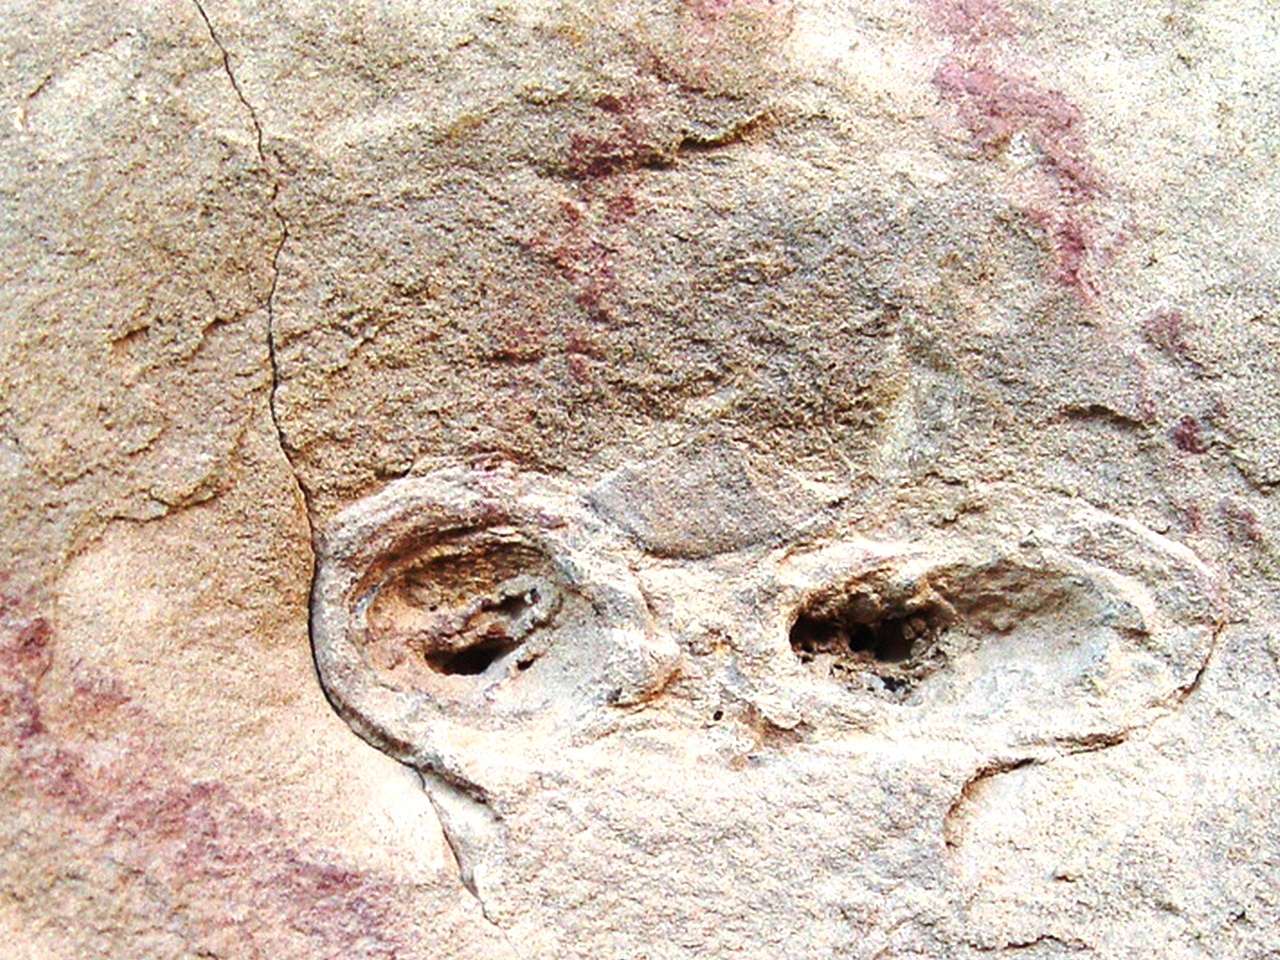 A countenance appears on the canyon wall at Gallo Campground, Chaco Canyon, New Mexico - Click for larger image (http://jamesmcgillis.com)